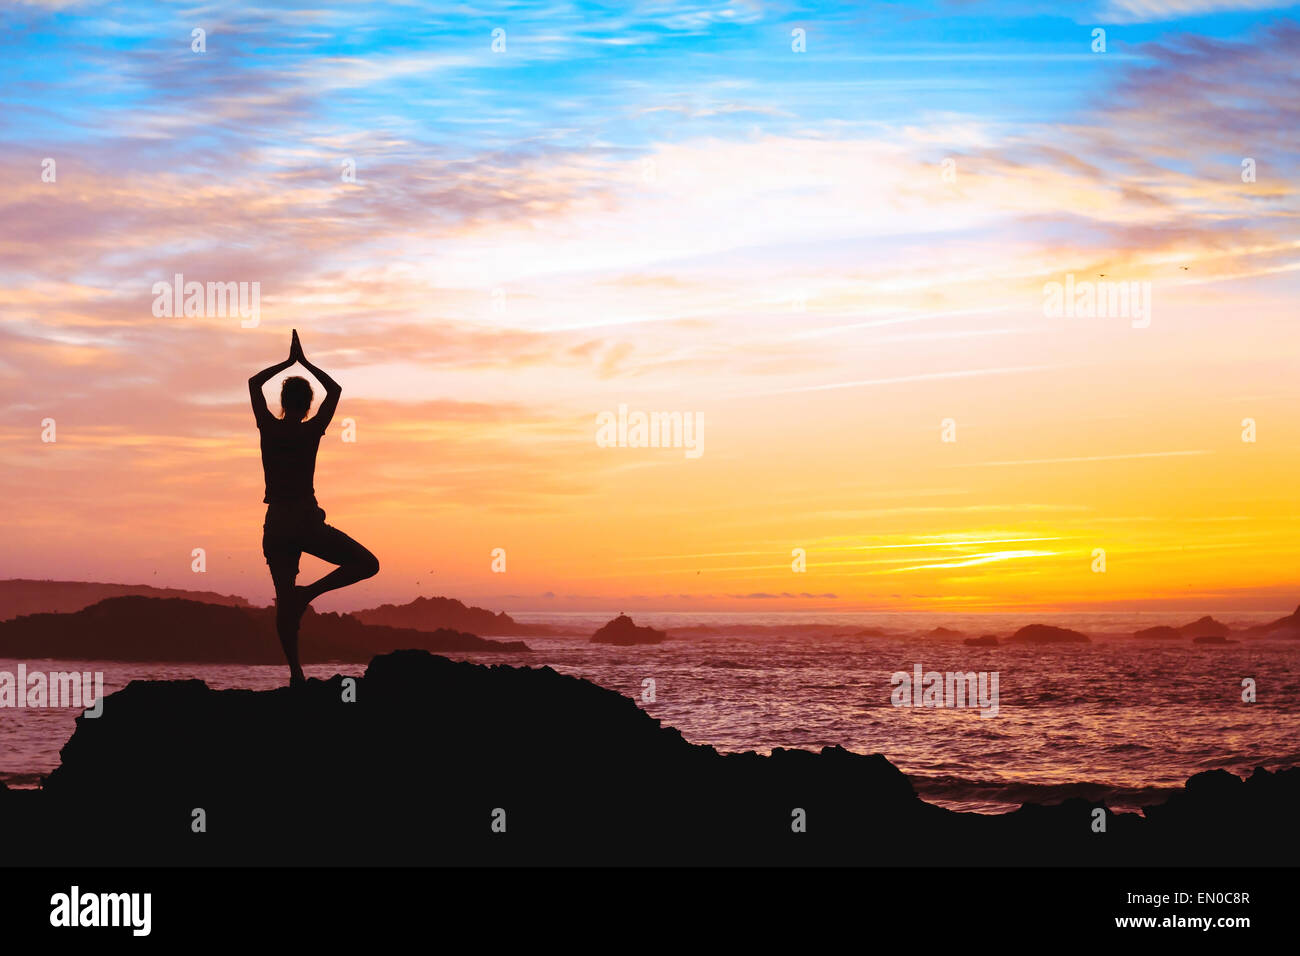 Belle silhouette of woman practicing yoga près de la mer Photo Stock